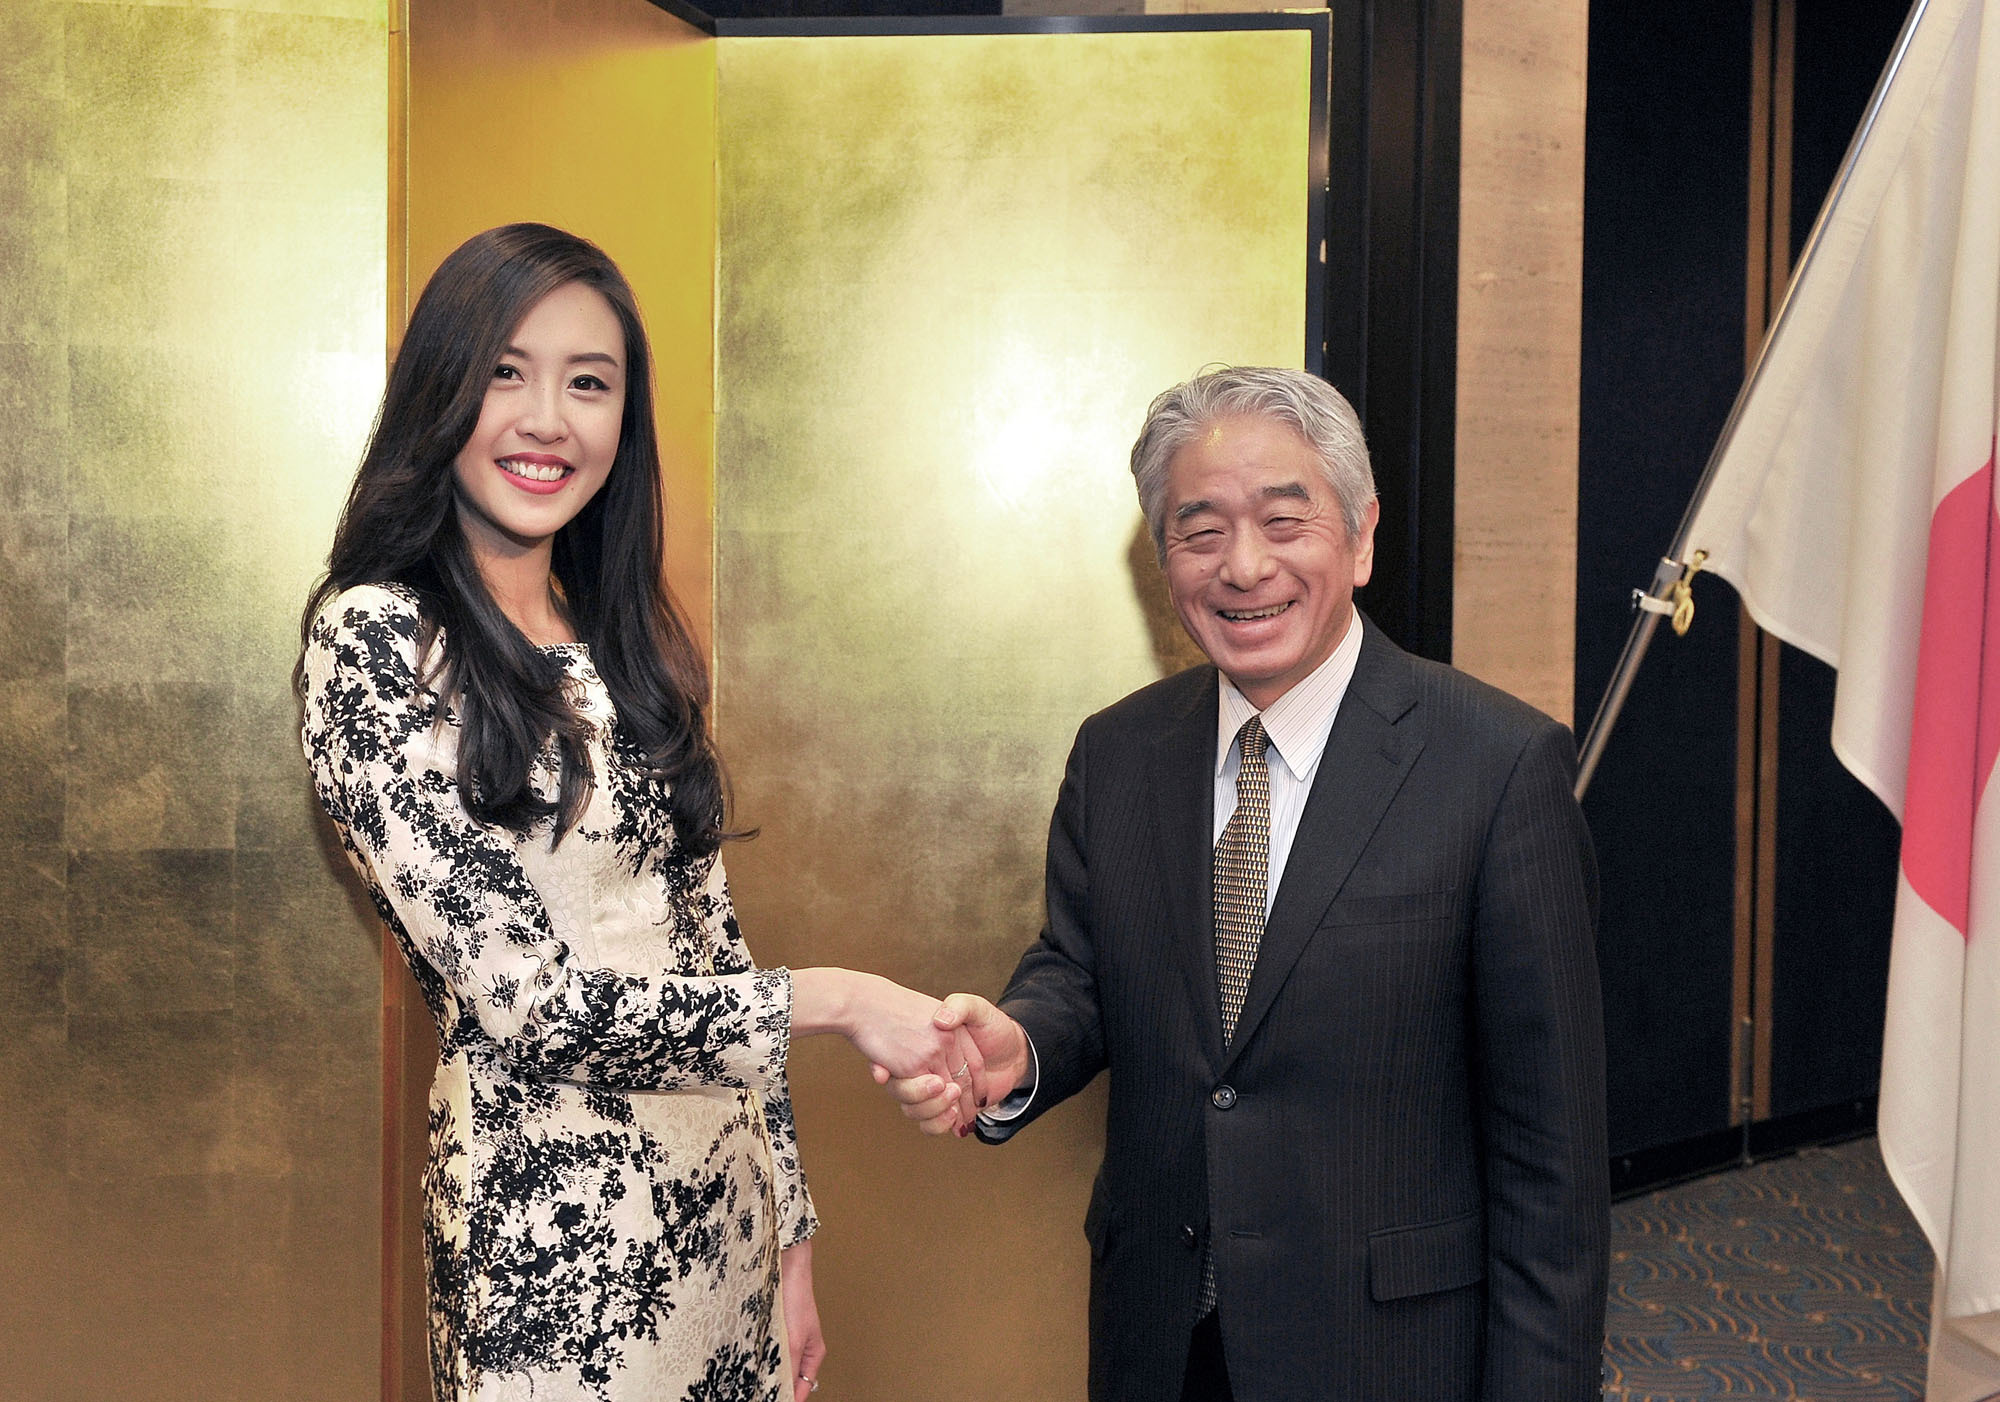 Brunei's Charge d'Affaires a.i. Jessica Tiah (left), welcomes Secretary General of the Asean-Japan Centre Masataka Fujita during a reception to celebrate the country's 33rd national day anniversary at the Hotel New Otani, Tokyo on March 3.   YOSHIAKI MIURA